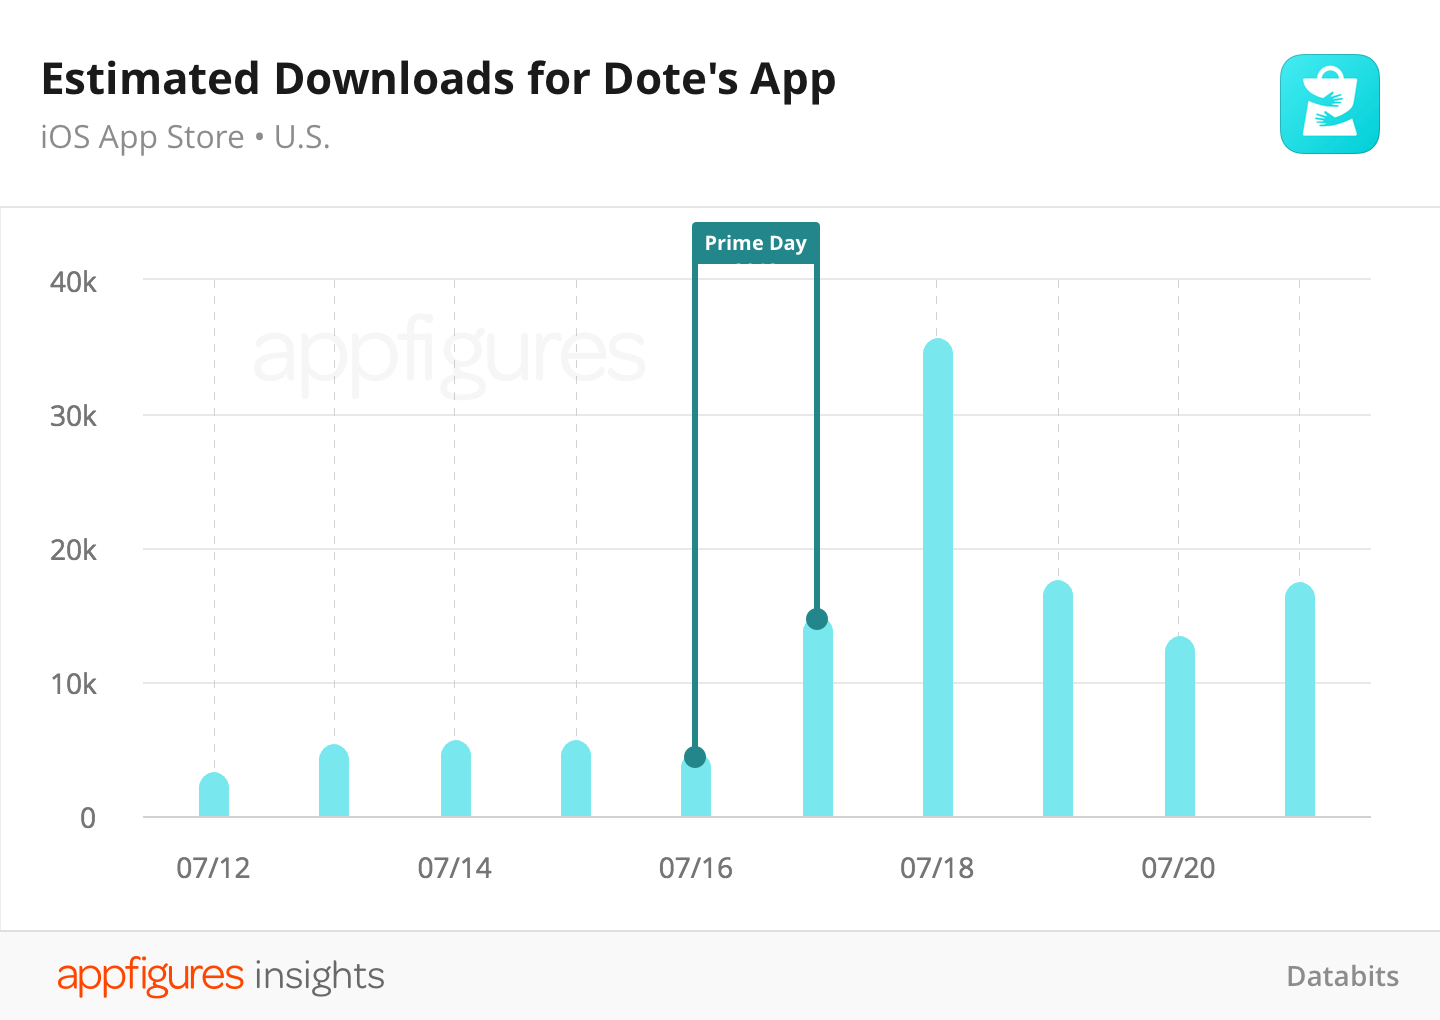 Estimated app downloads for Dote for iOS from Appfigures